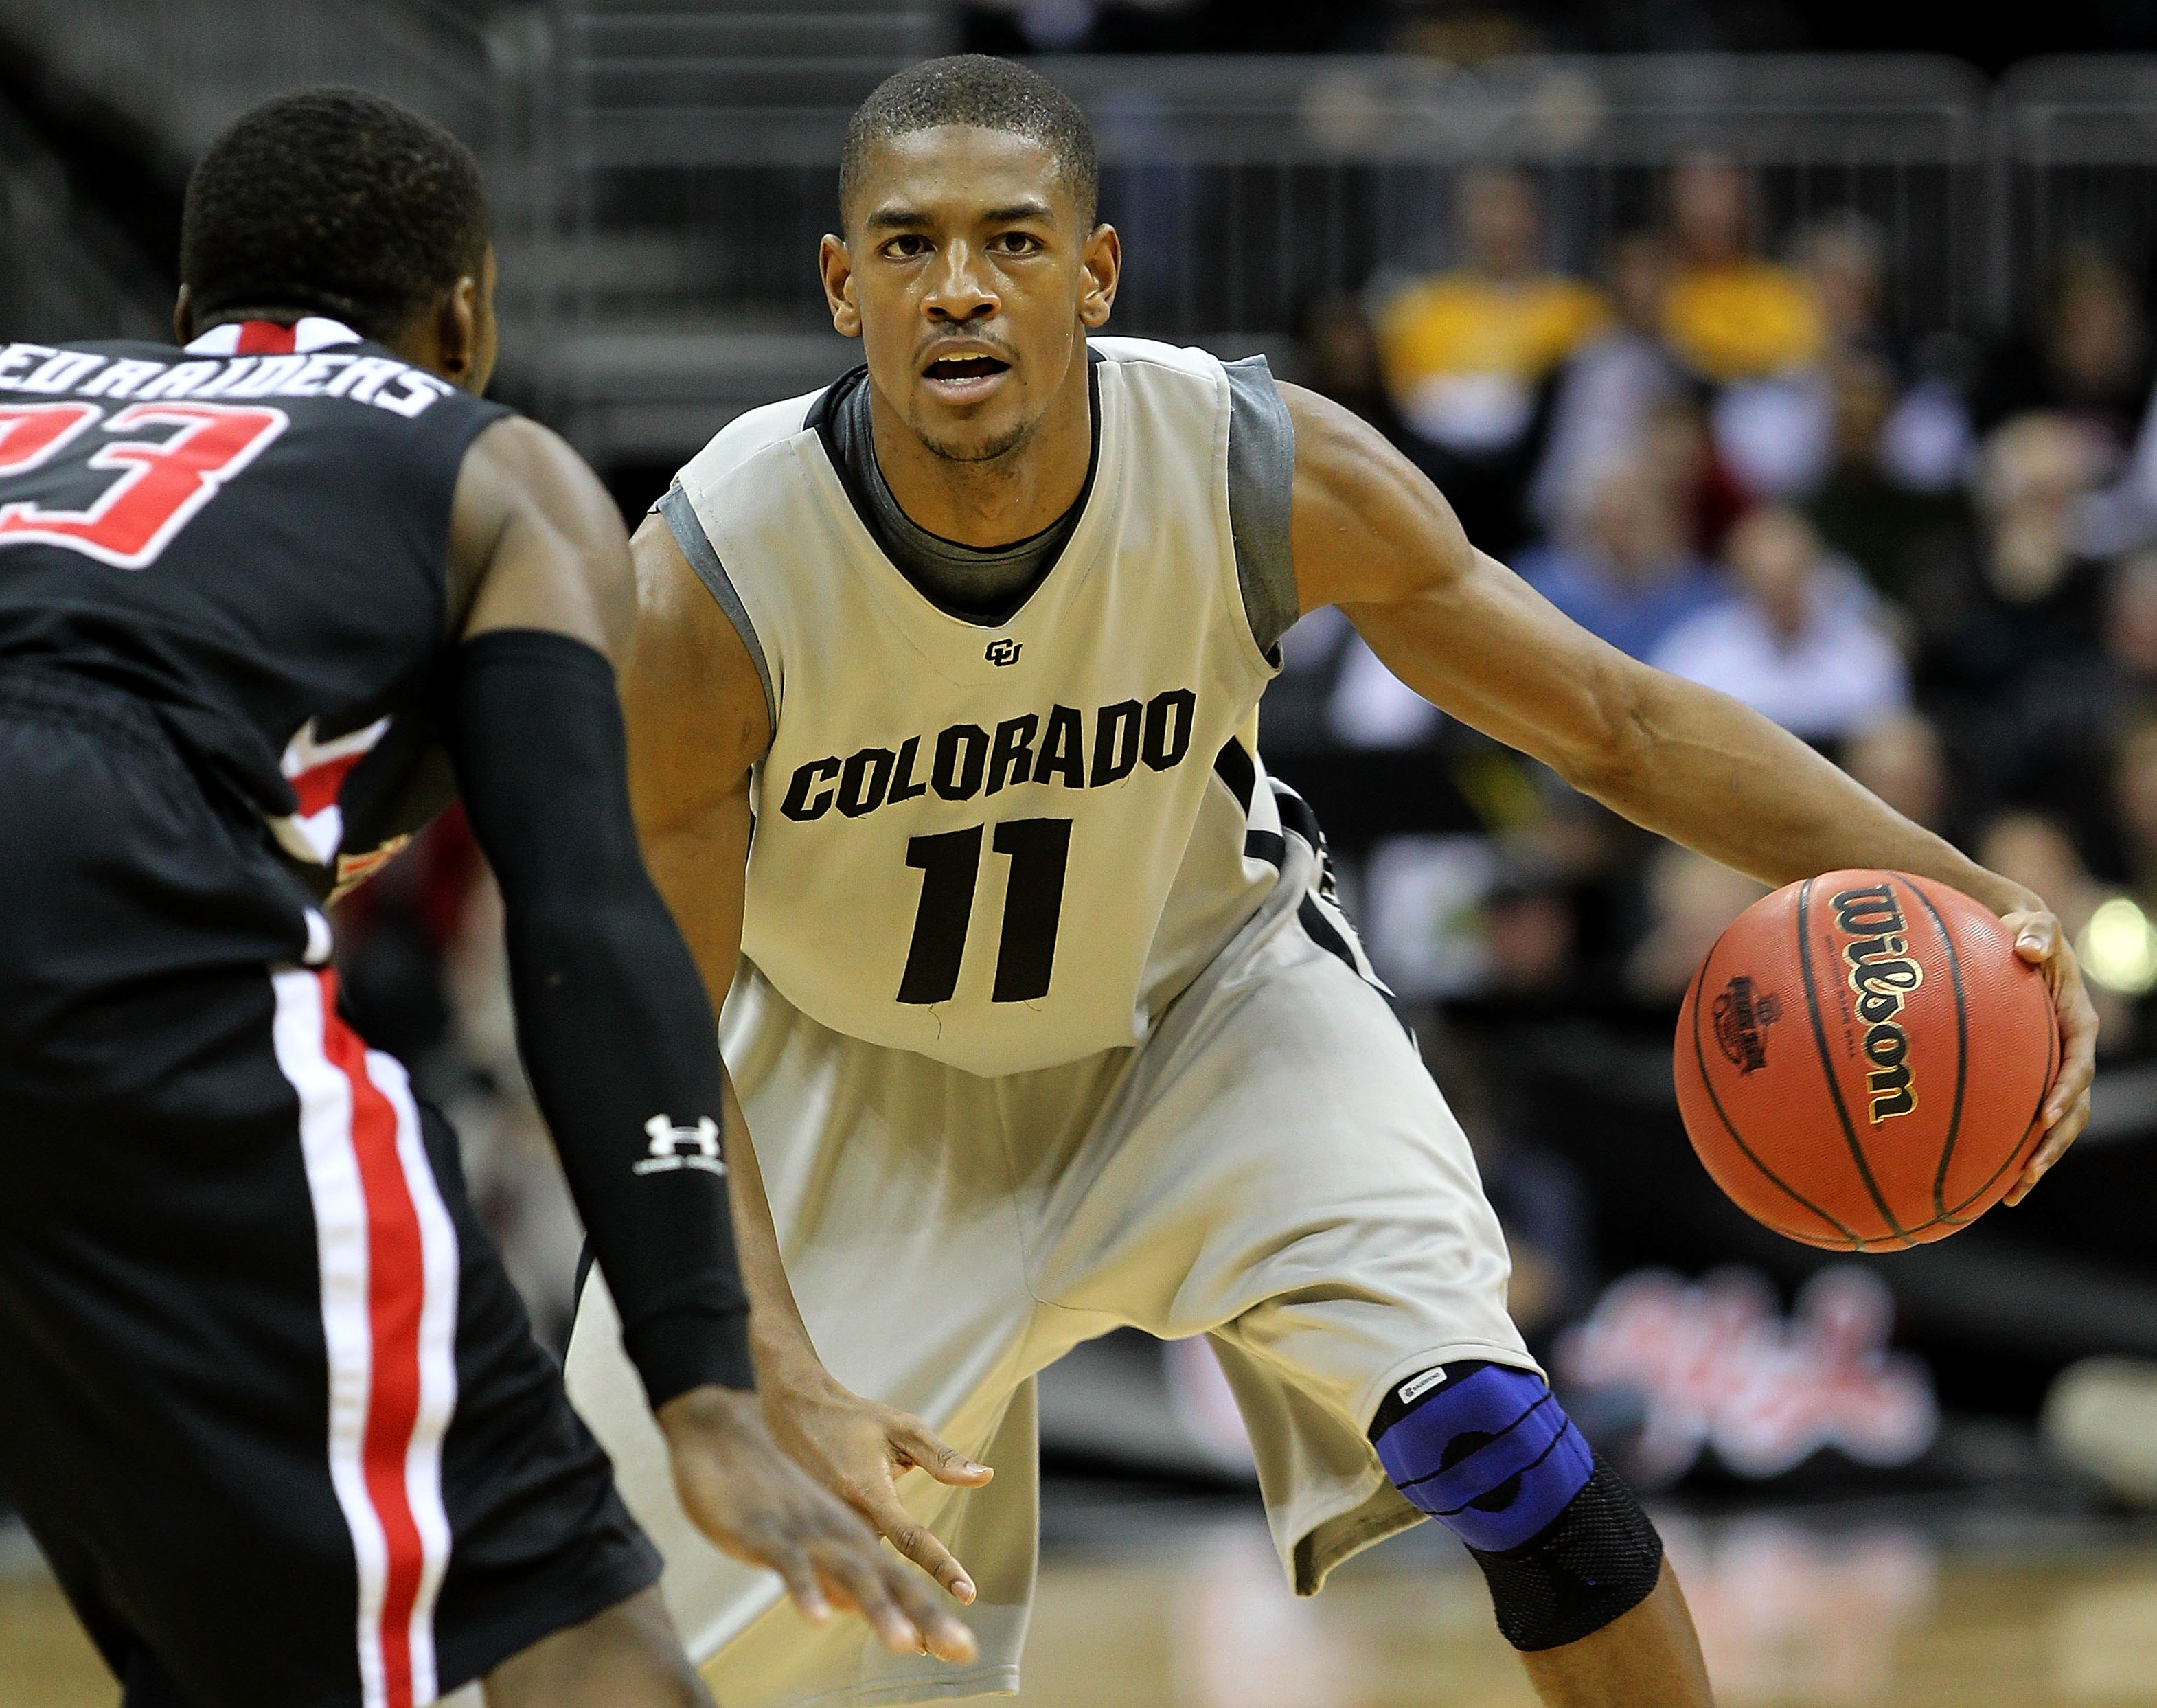 KANSAS CITY, MO - MARCH 10:  Cory Higgins #11 of the Colorado Buffaloes moves the ball against the Texas Tech Red Raiders in the first half during the first round game of the 2010 Phillips 66 Big 12 Men's Basketball Tournament at the Sprint Center on Marc